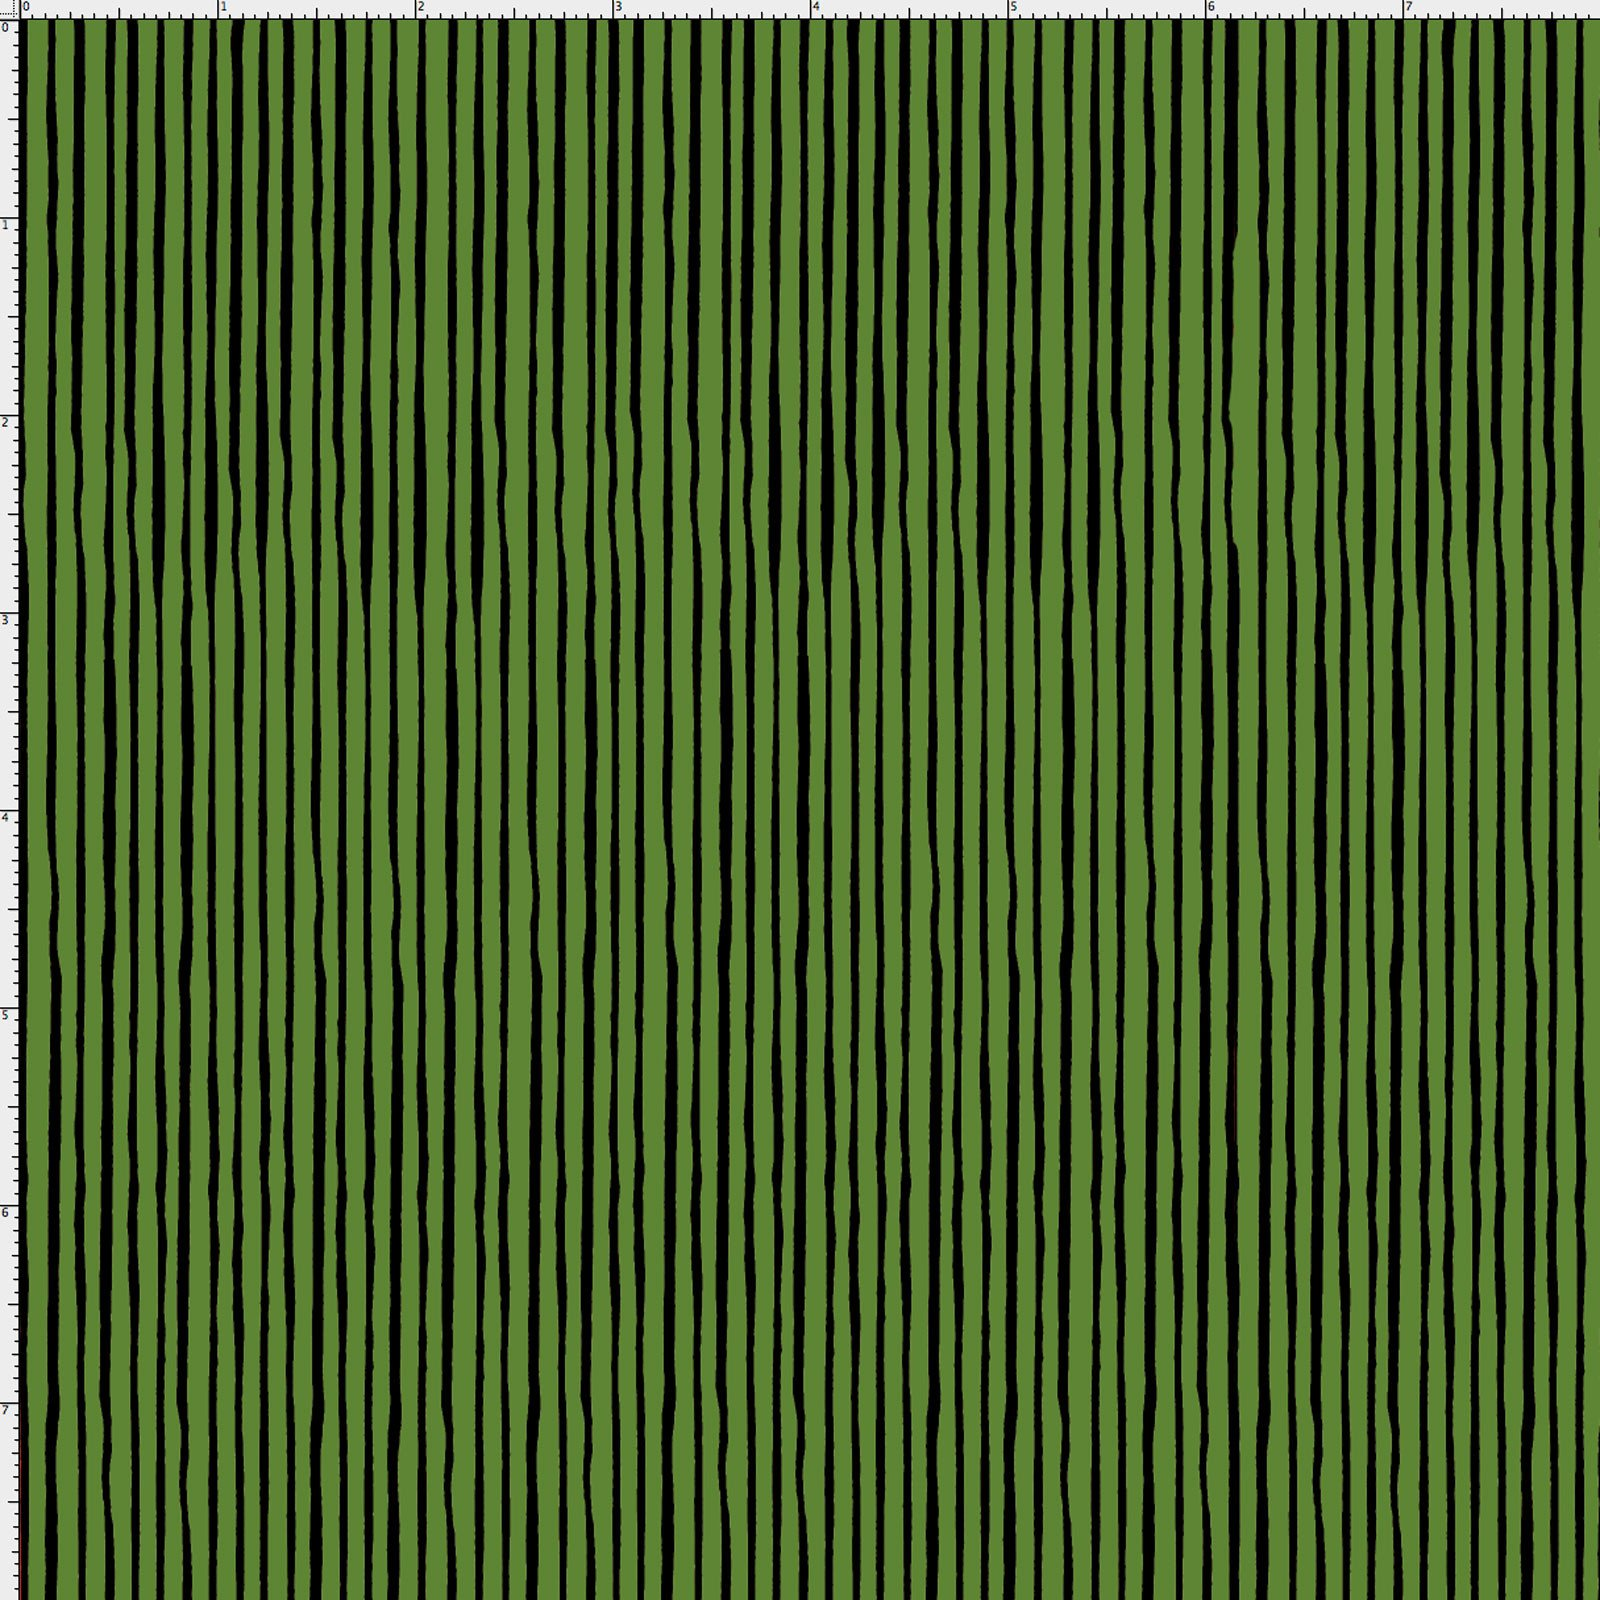 Quirky Pin Stripe Forest Green